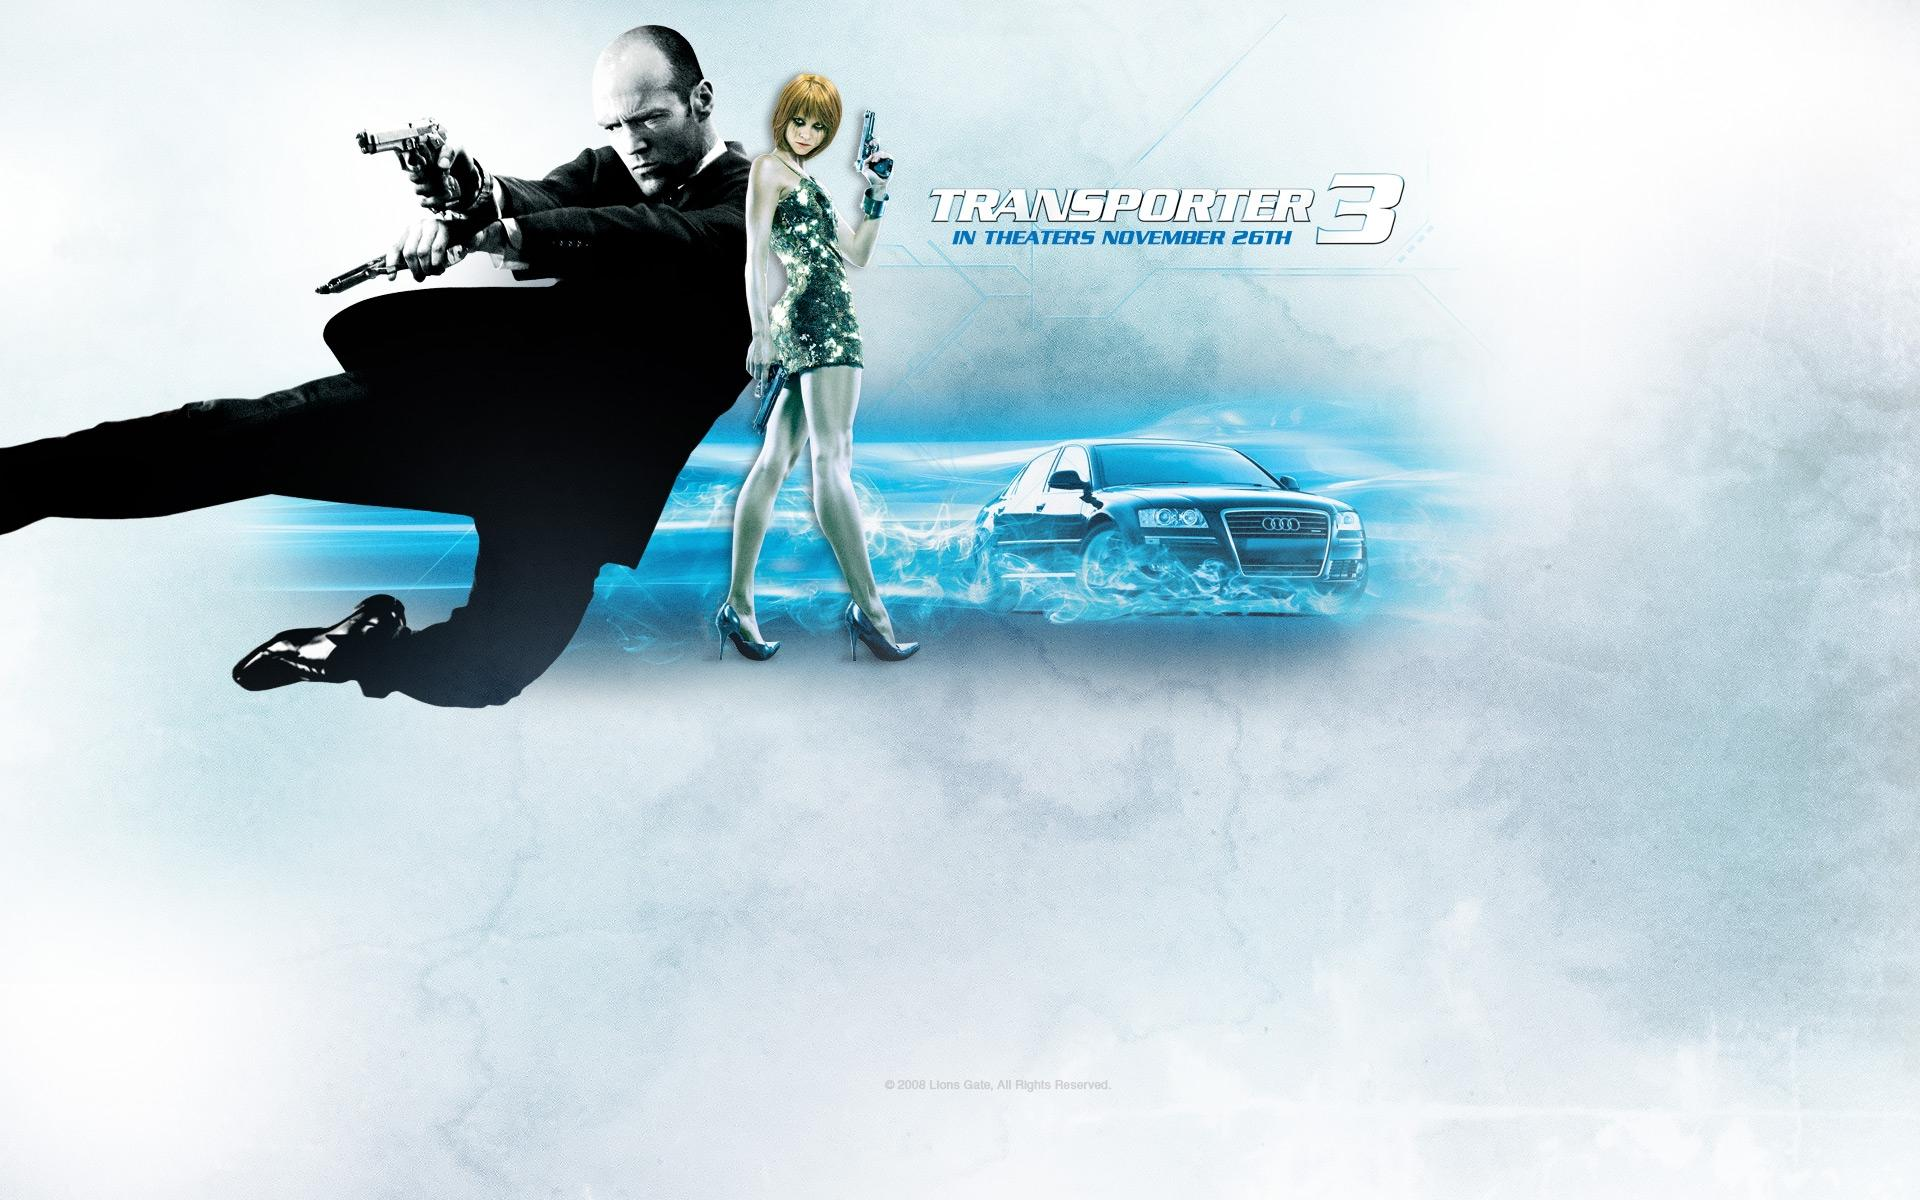 Desktop Wallpapers The Transporter Movies film